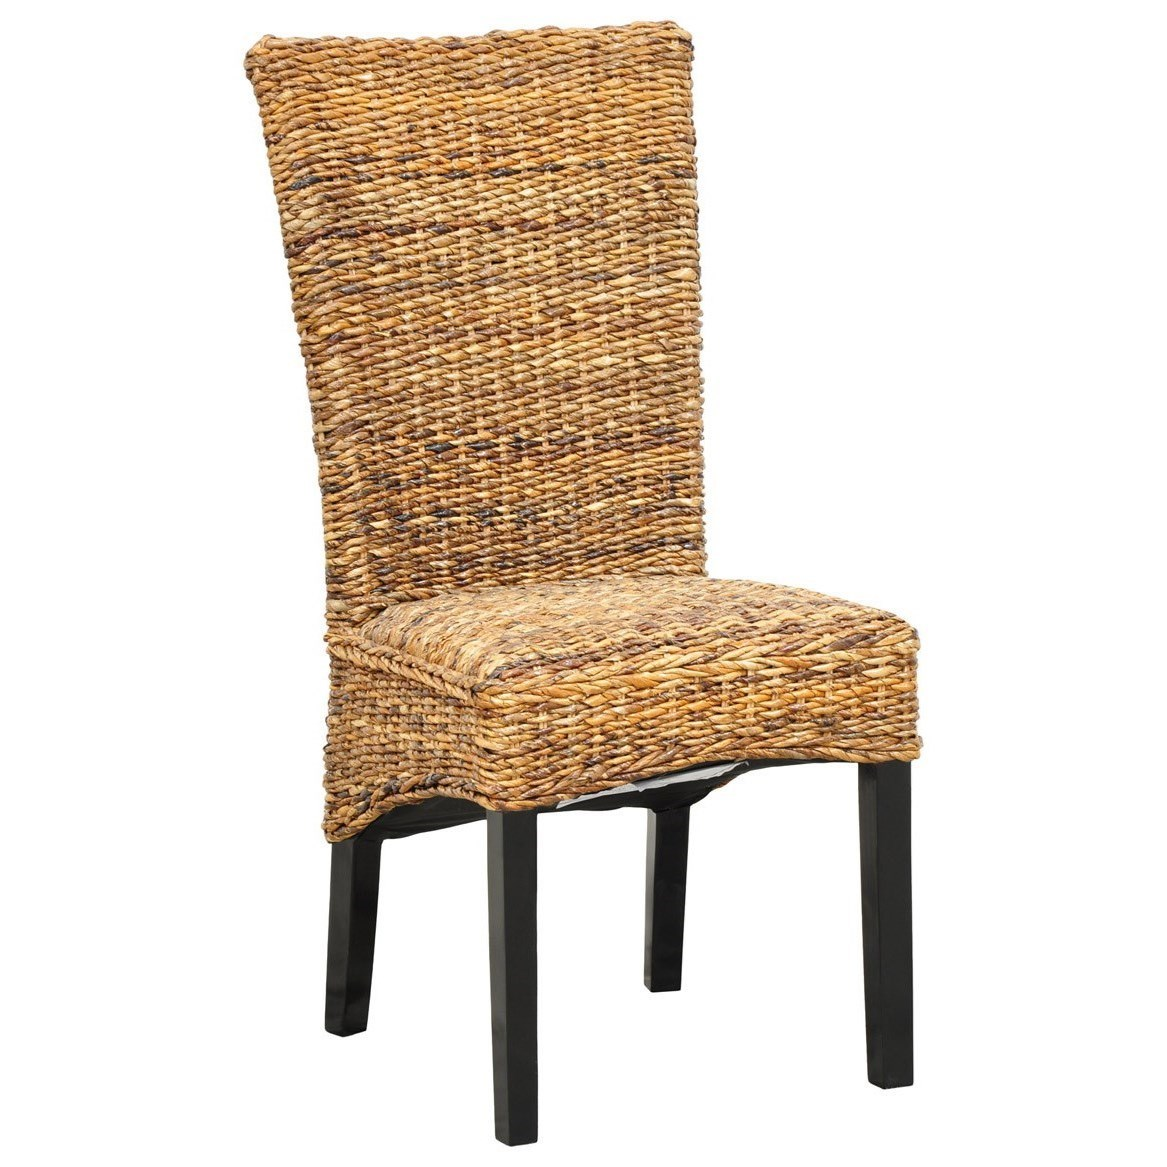 Kirana Dining Chair by Classic Home at Alison Craig Home Furnishings